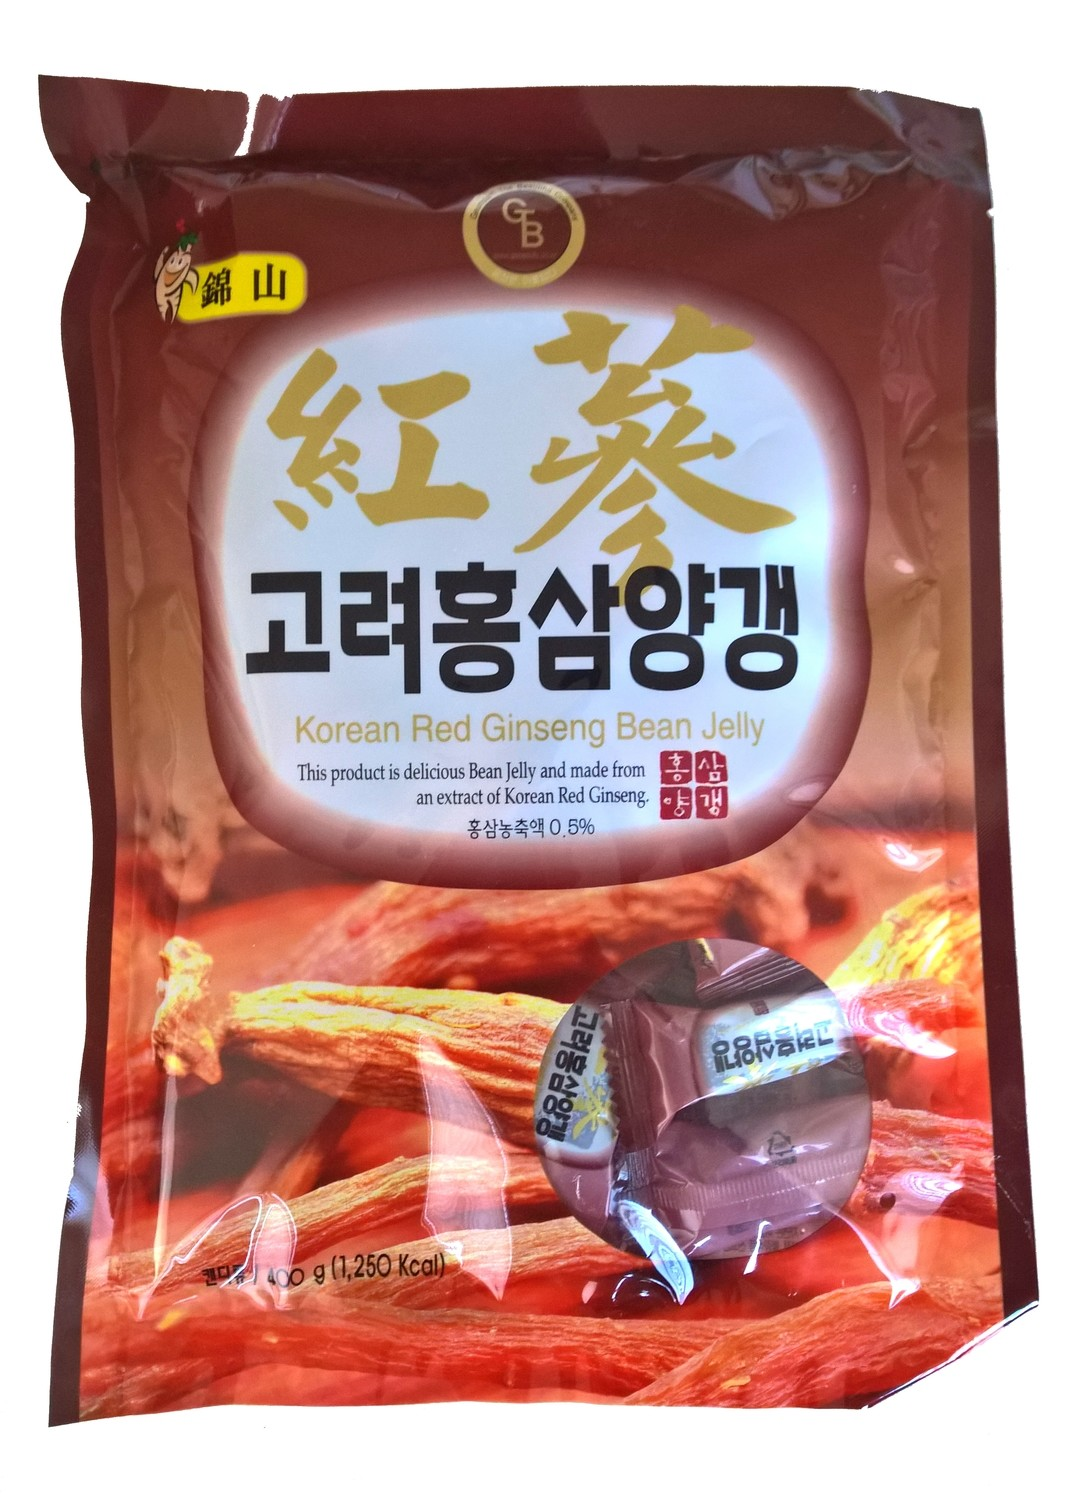 Korean Red Ginseng Bean Jelly candies - bag of 400 grams